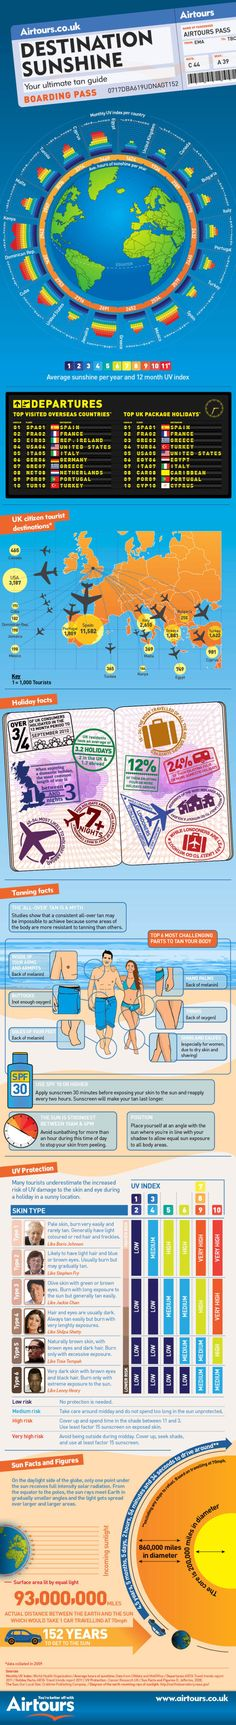 Destination Sunshine – A Travel Infographic from Airtours